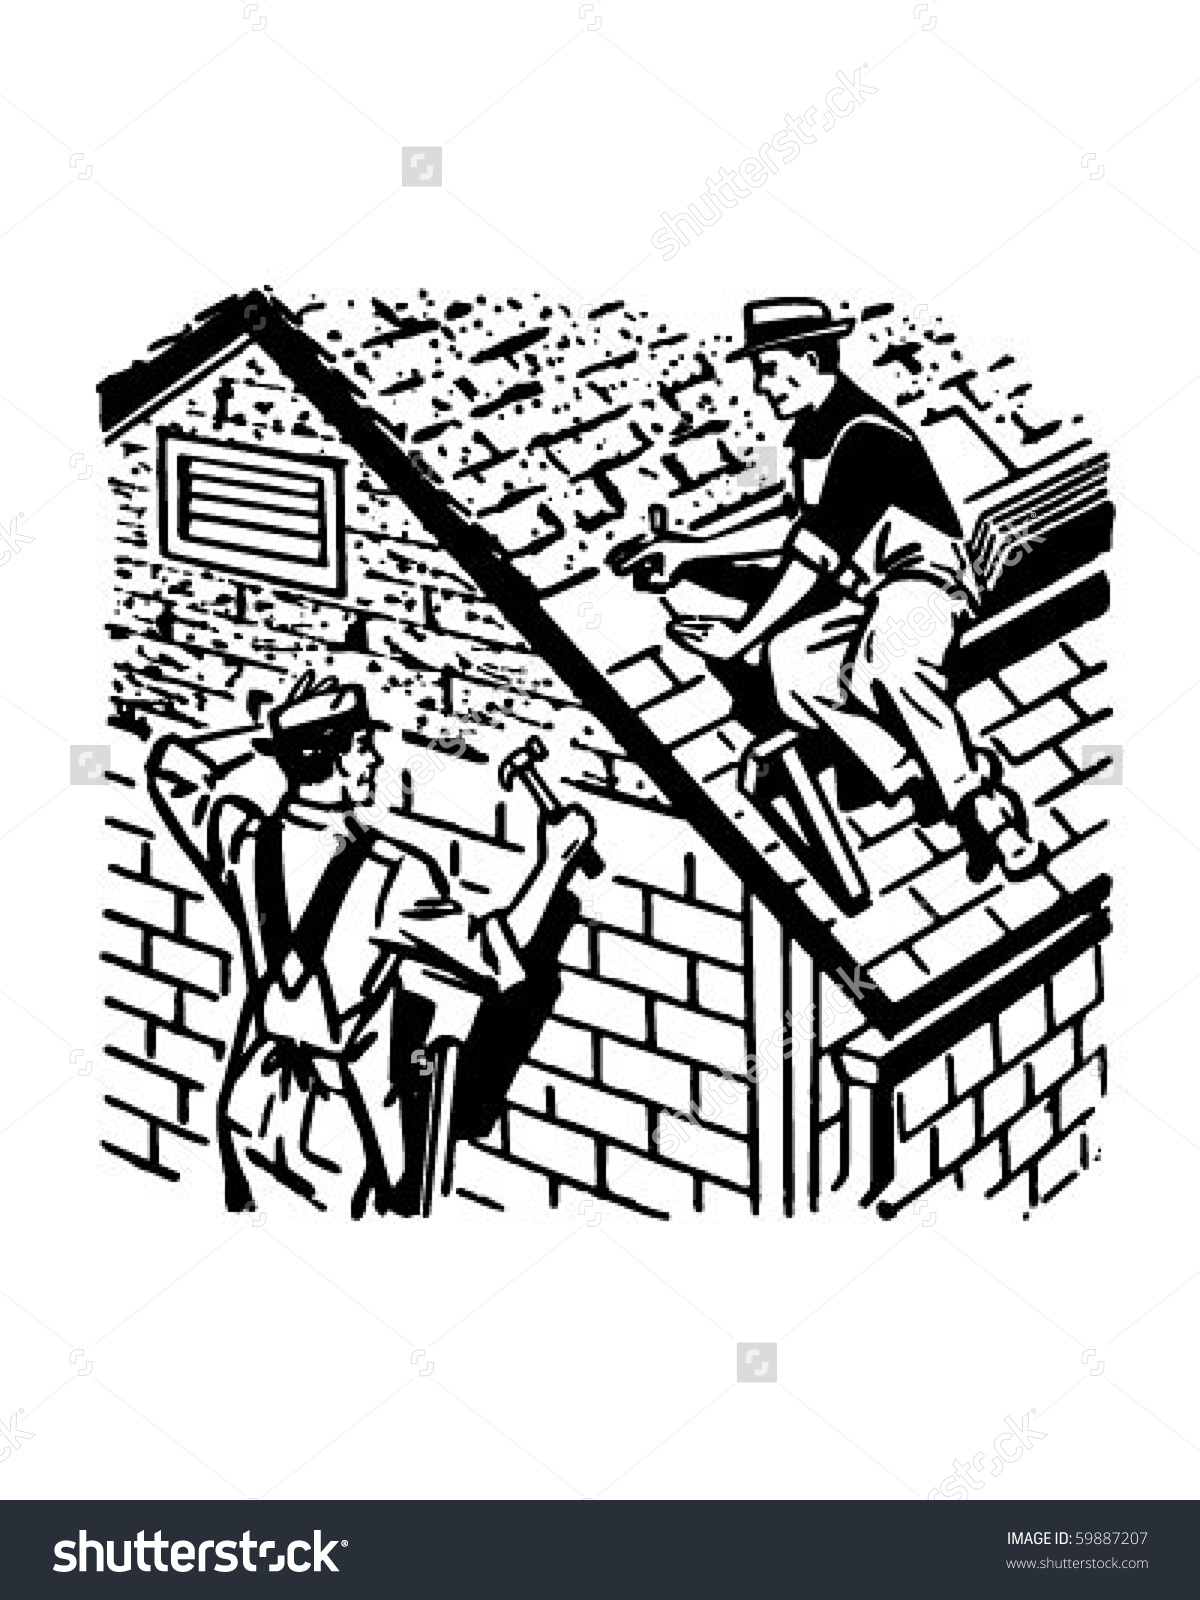 Roofers Work Retro Clip Art Stock Vector 59887207.